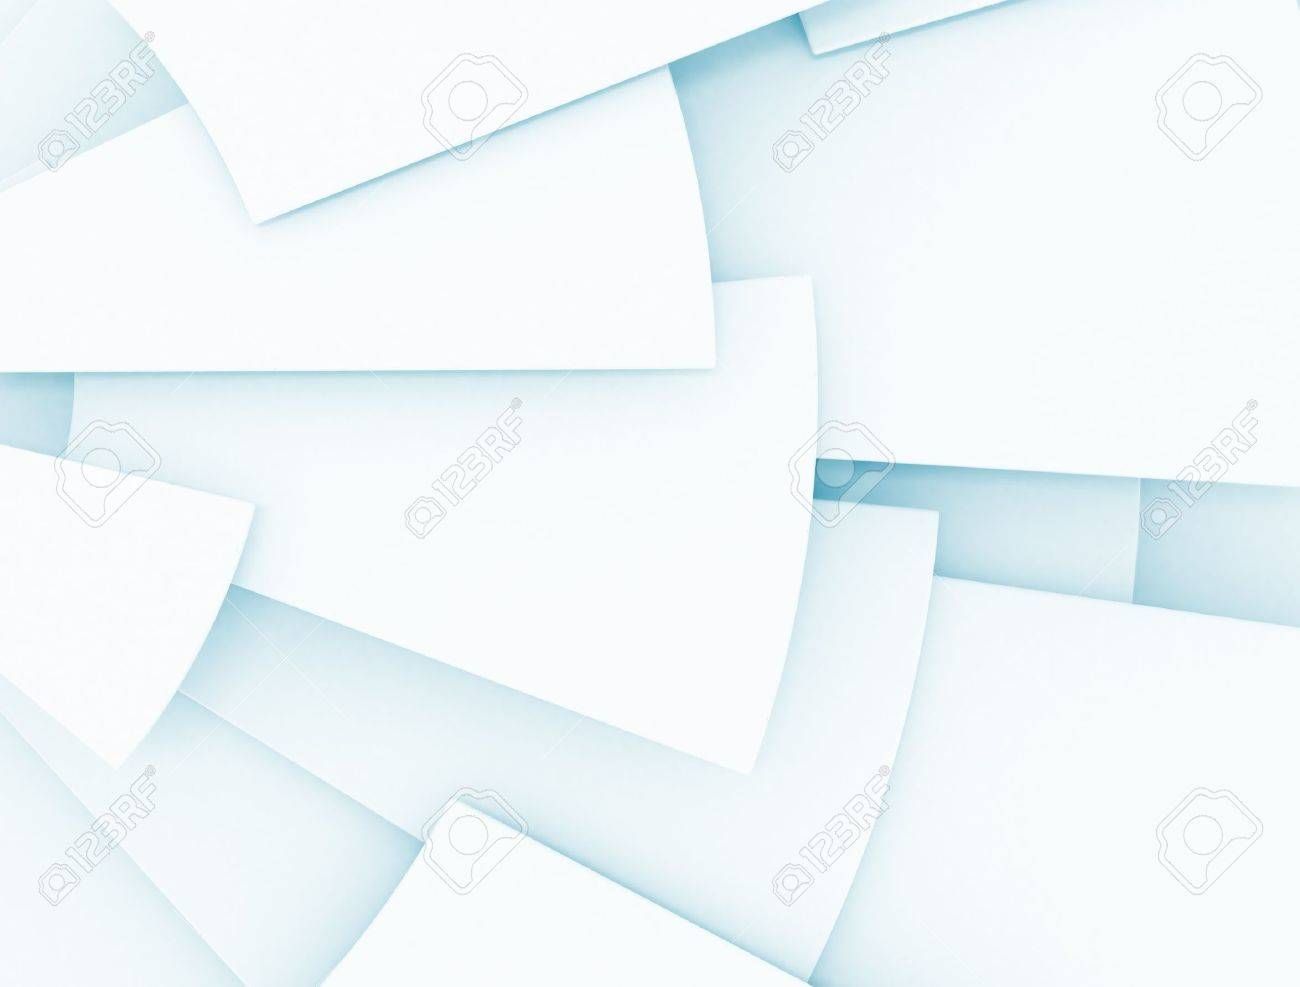 Abstract blank squares Stock Photo - 13281170